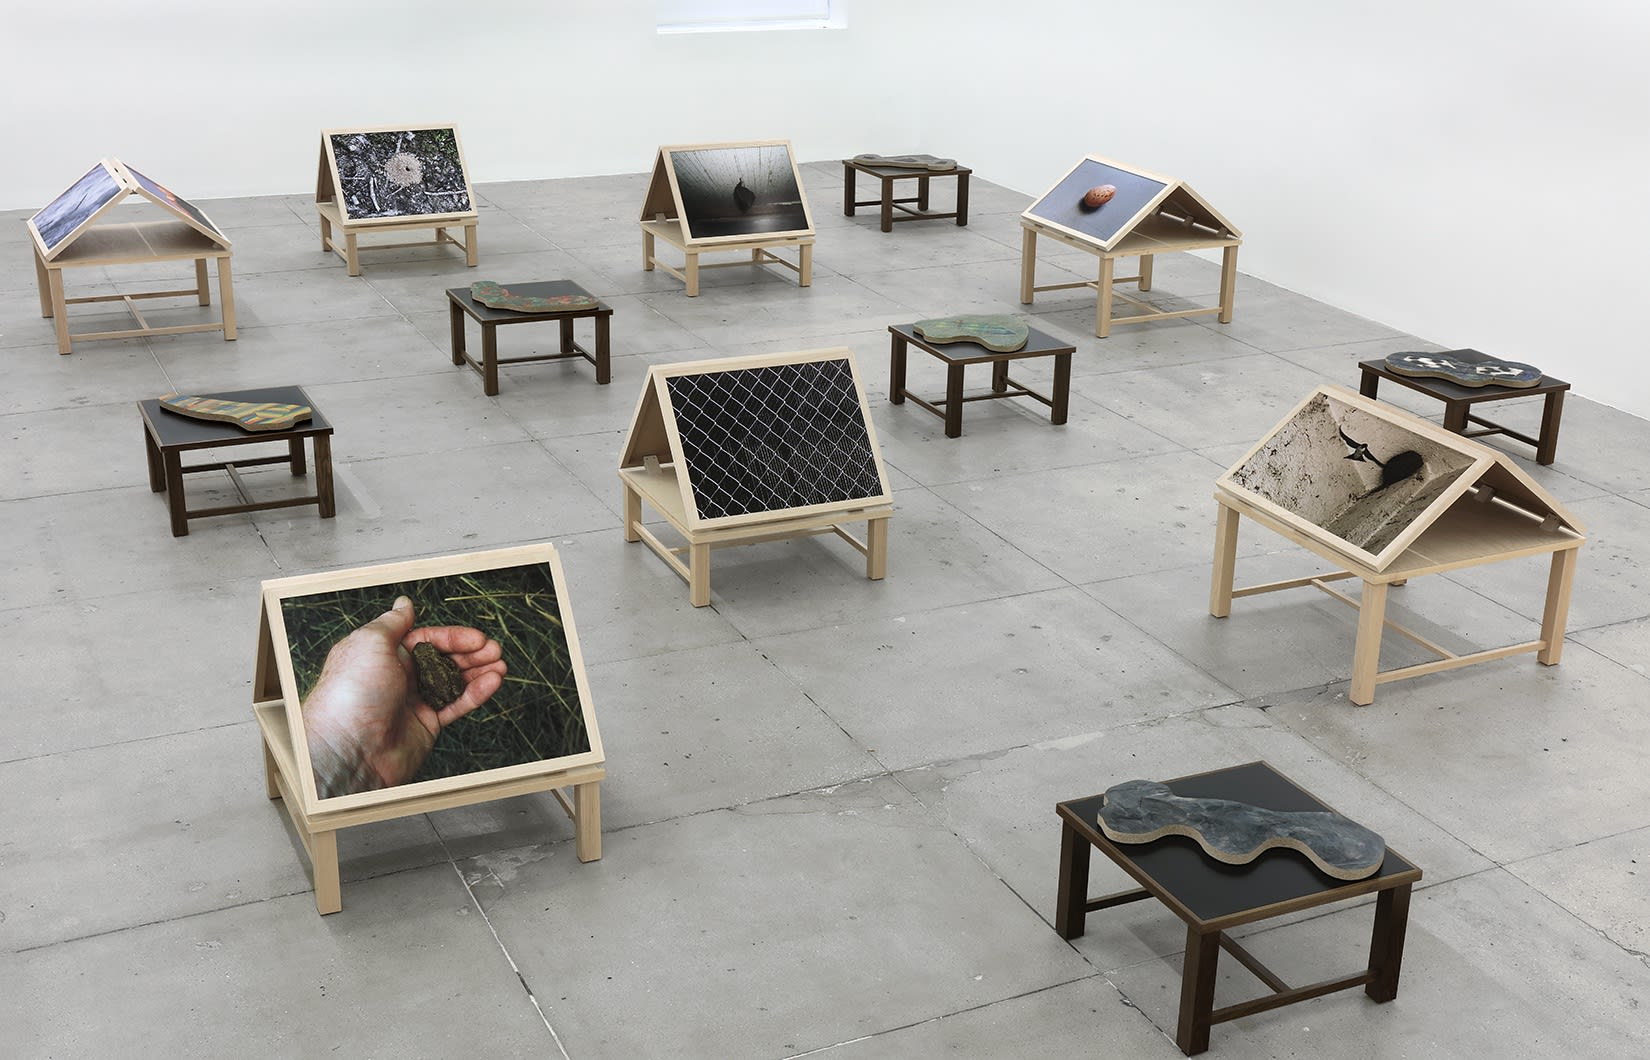 13 wooden platforms display color photographs and flat sculptures over a concrete floor.